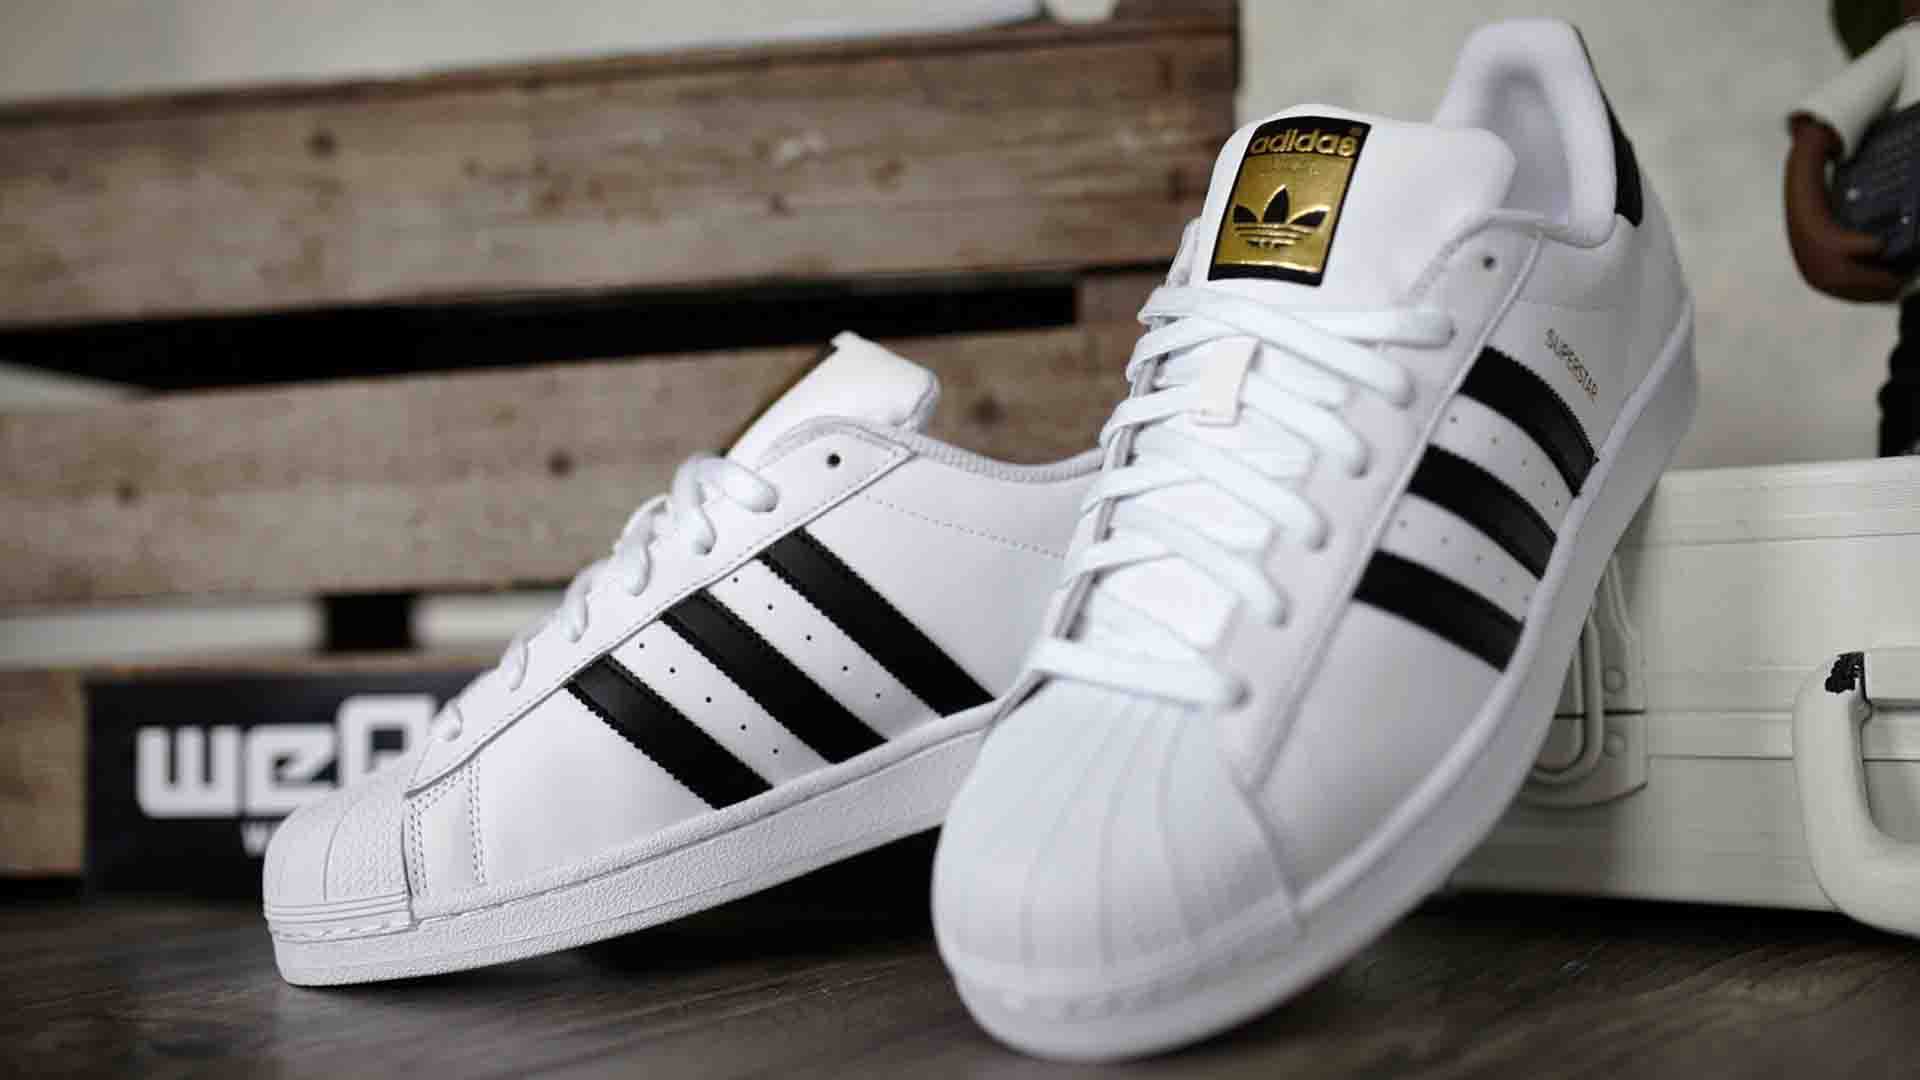 shoes similar to adidas superstar